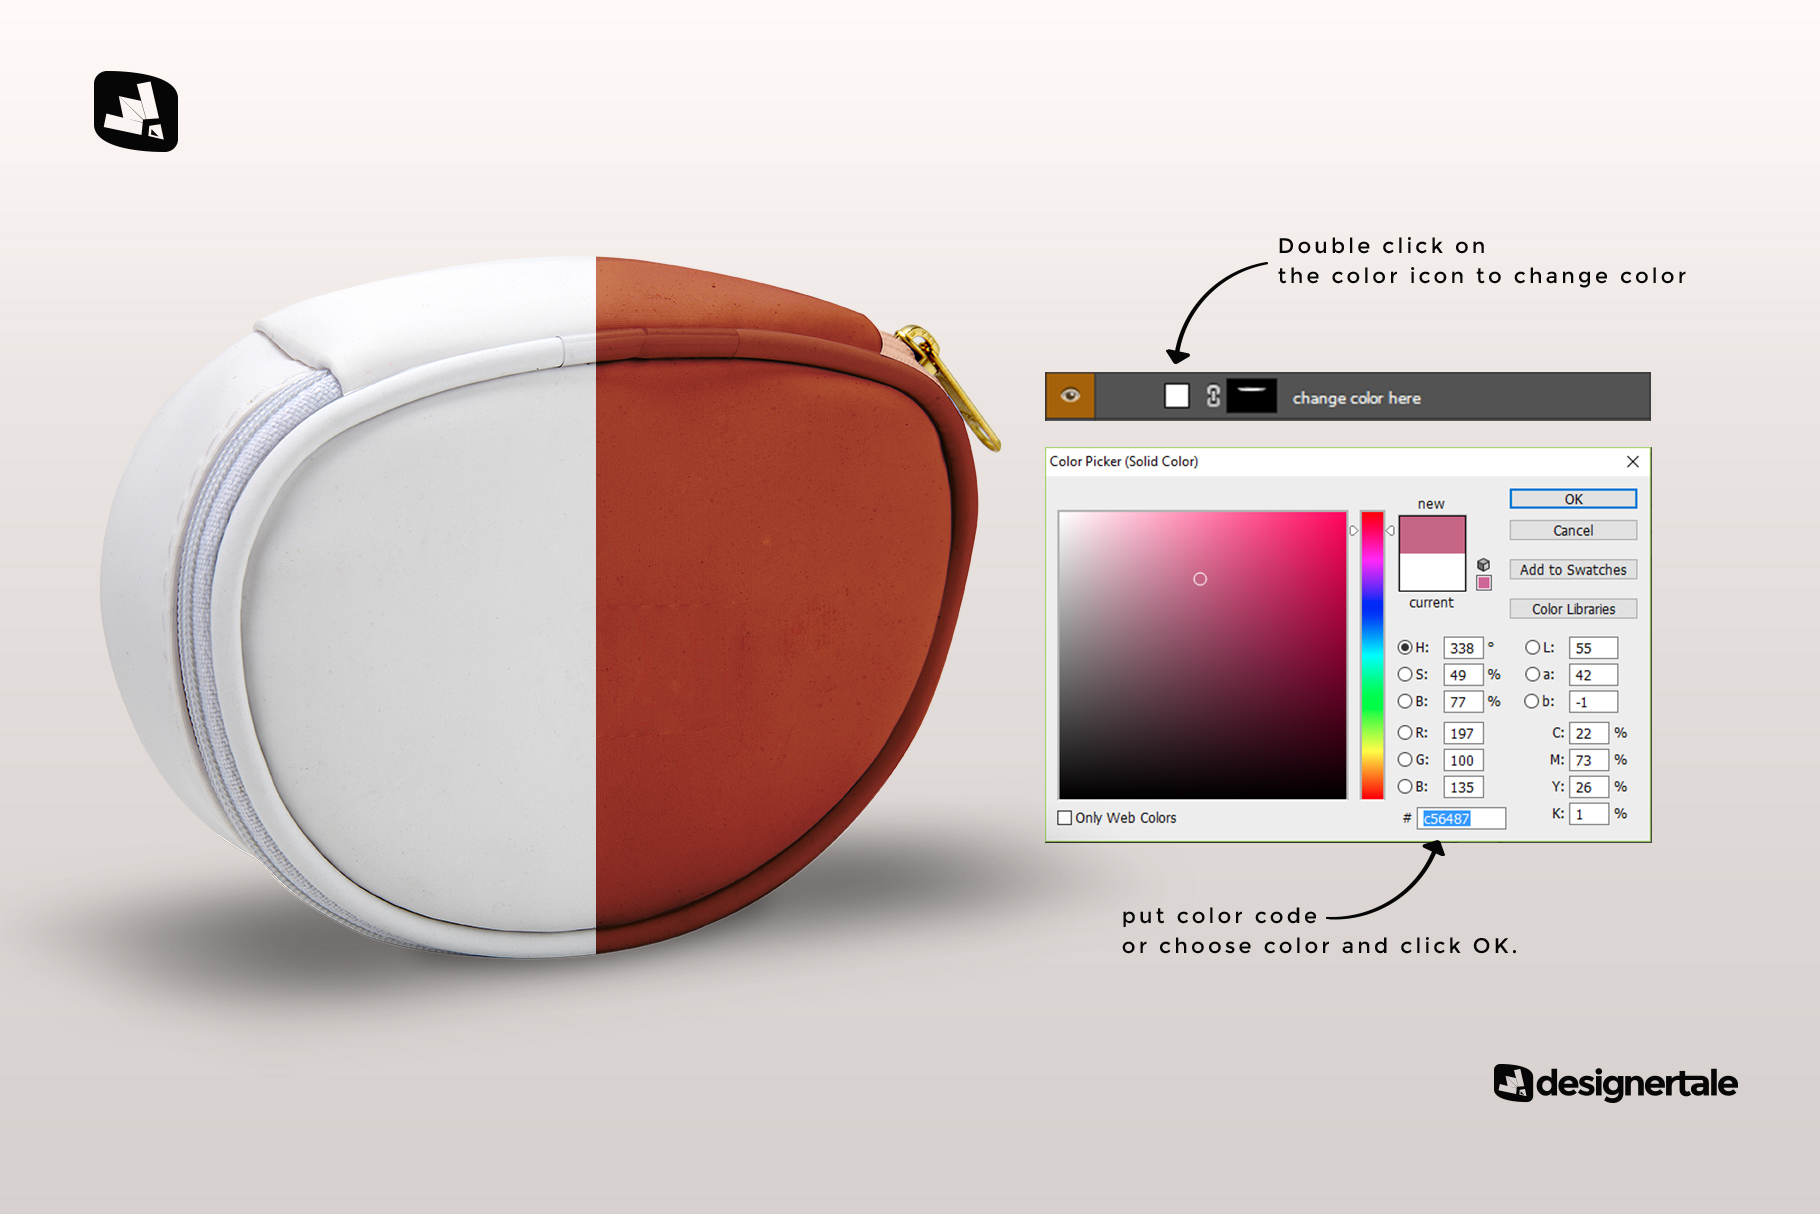 how to change color of the luxury carry on toiletry bag mockup